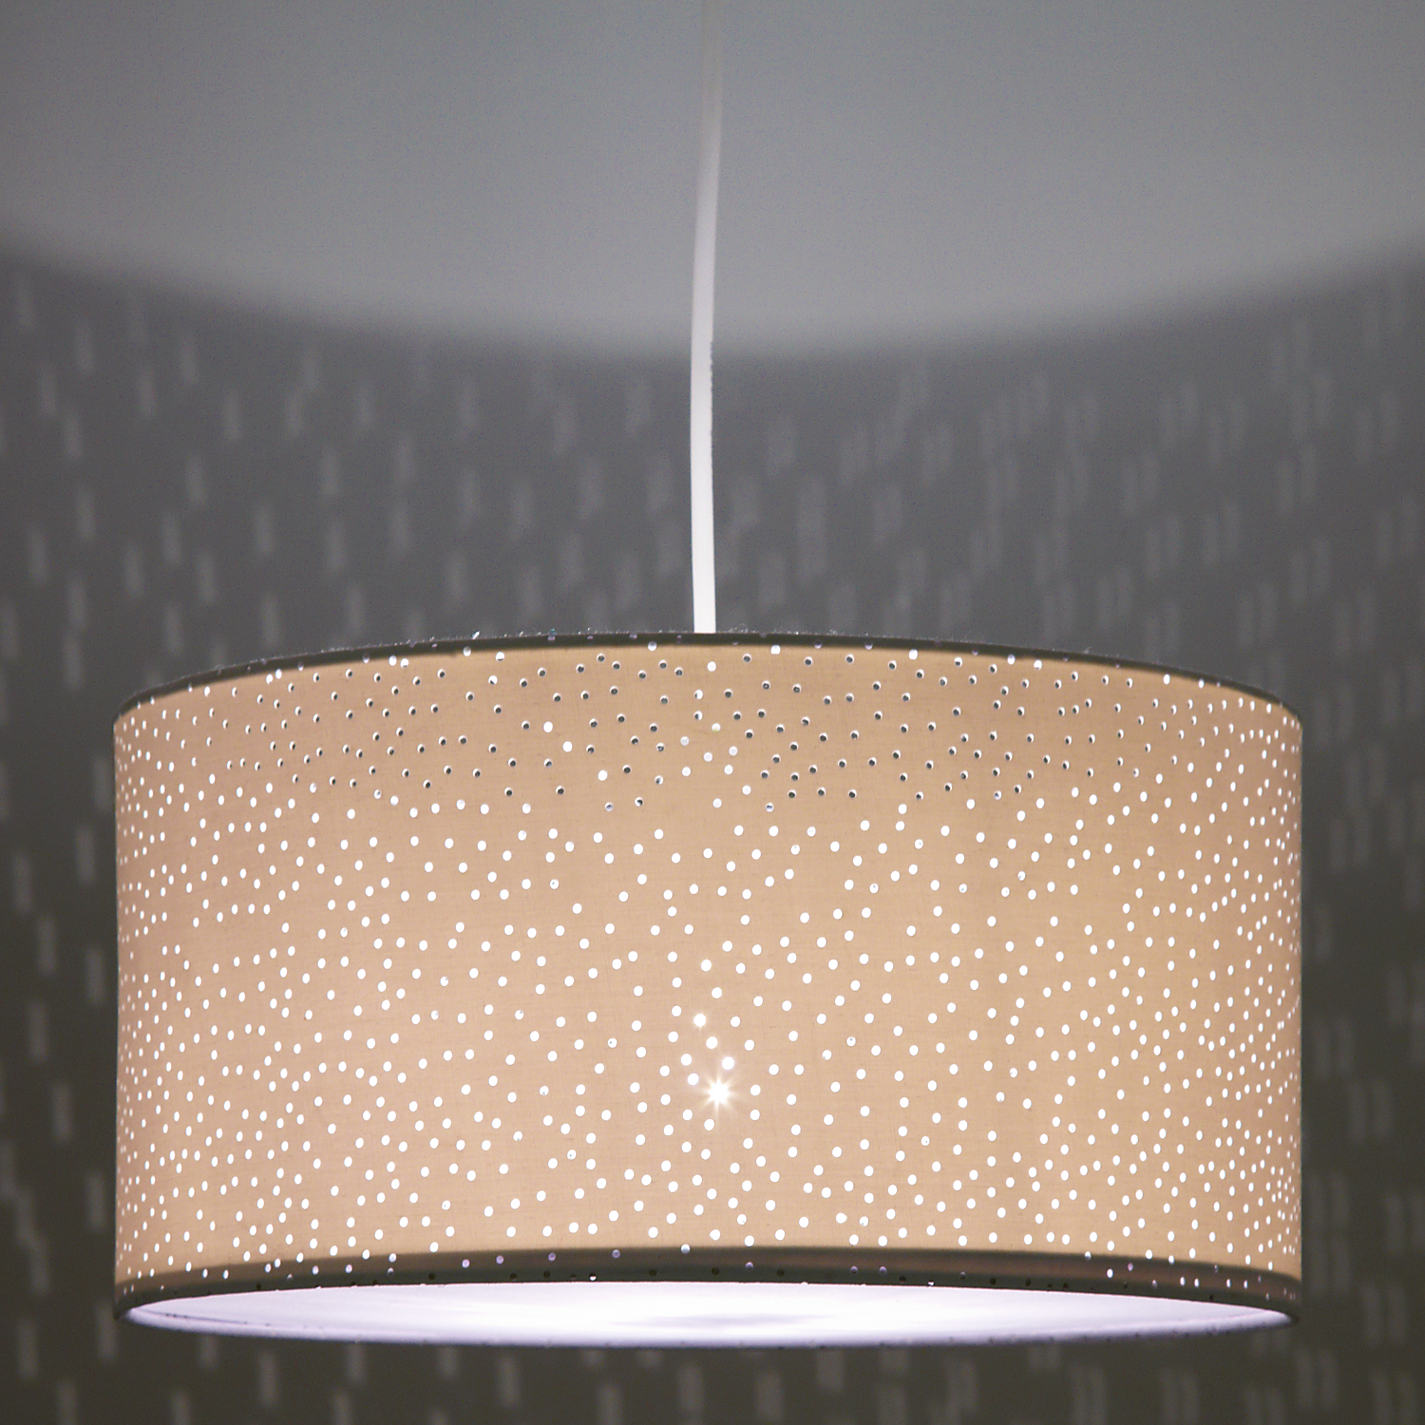 Bedroom Ceiling Lights John Lewis : John lewis bedroom lights home design inspirations